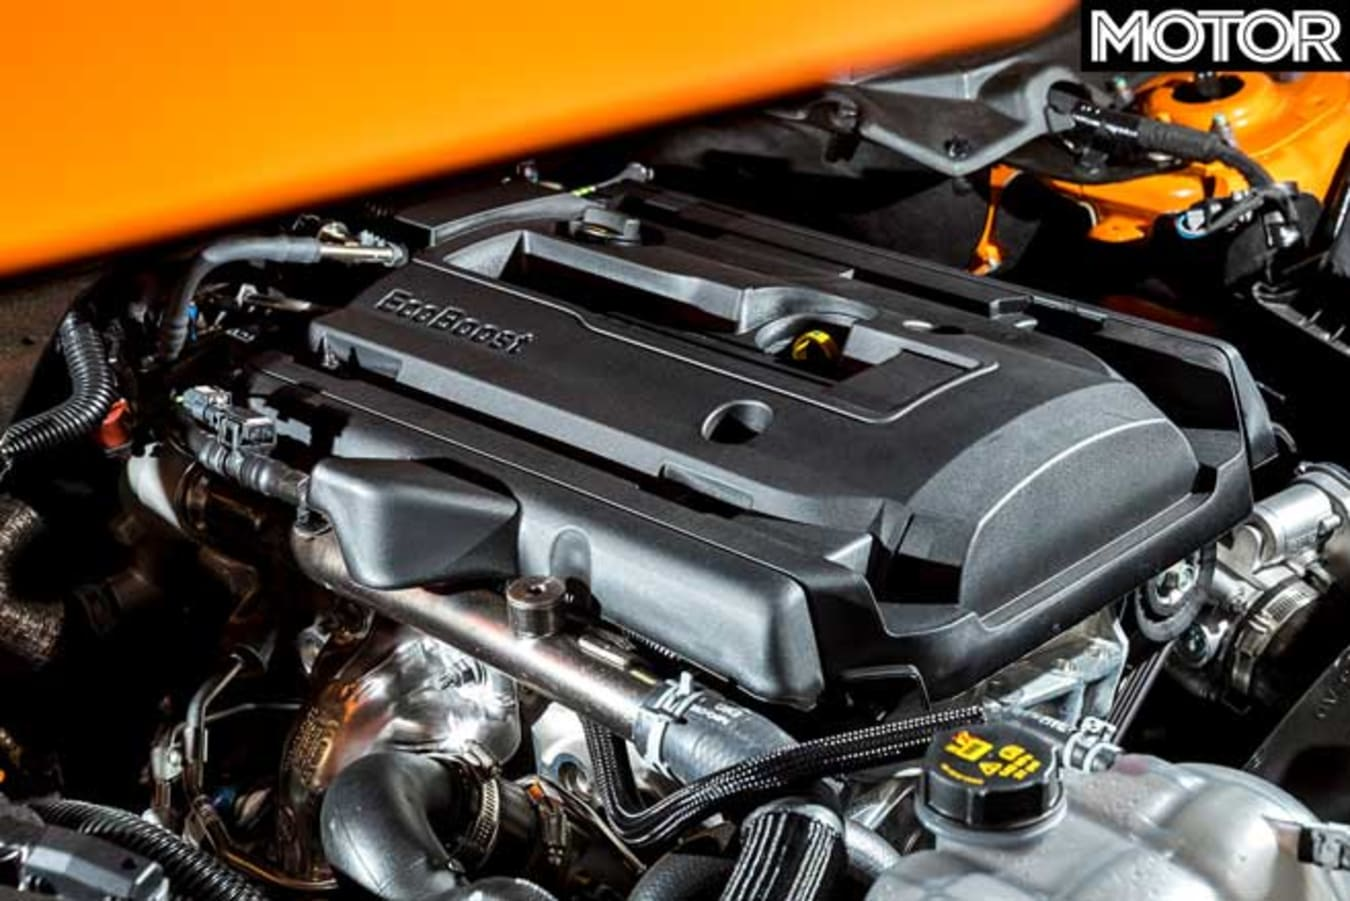 2020 Ford Mustang High Performance Engine Jpg